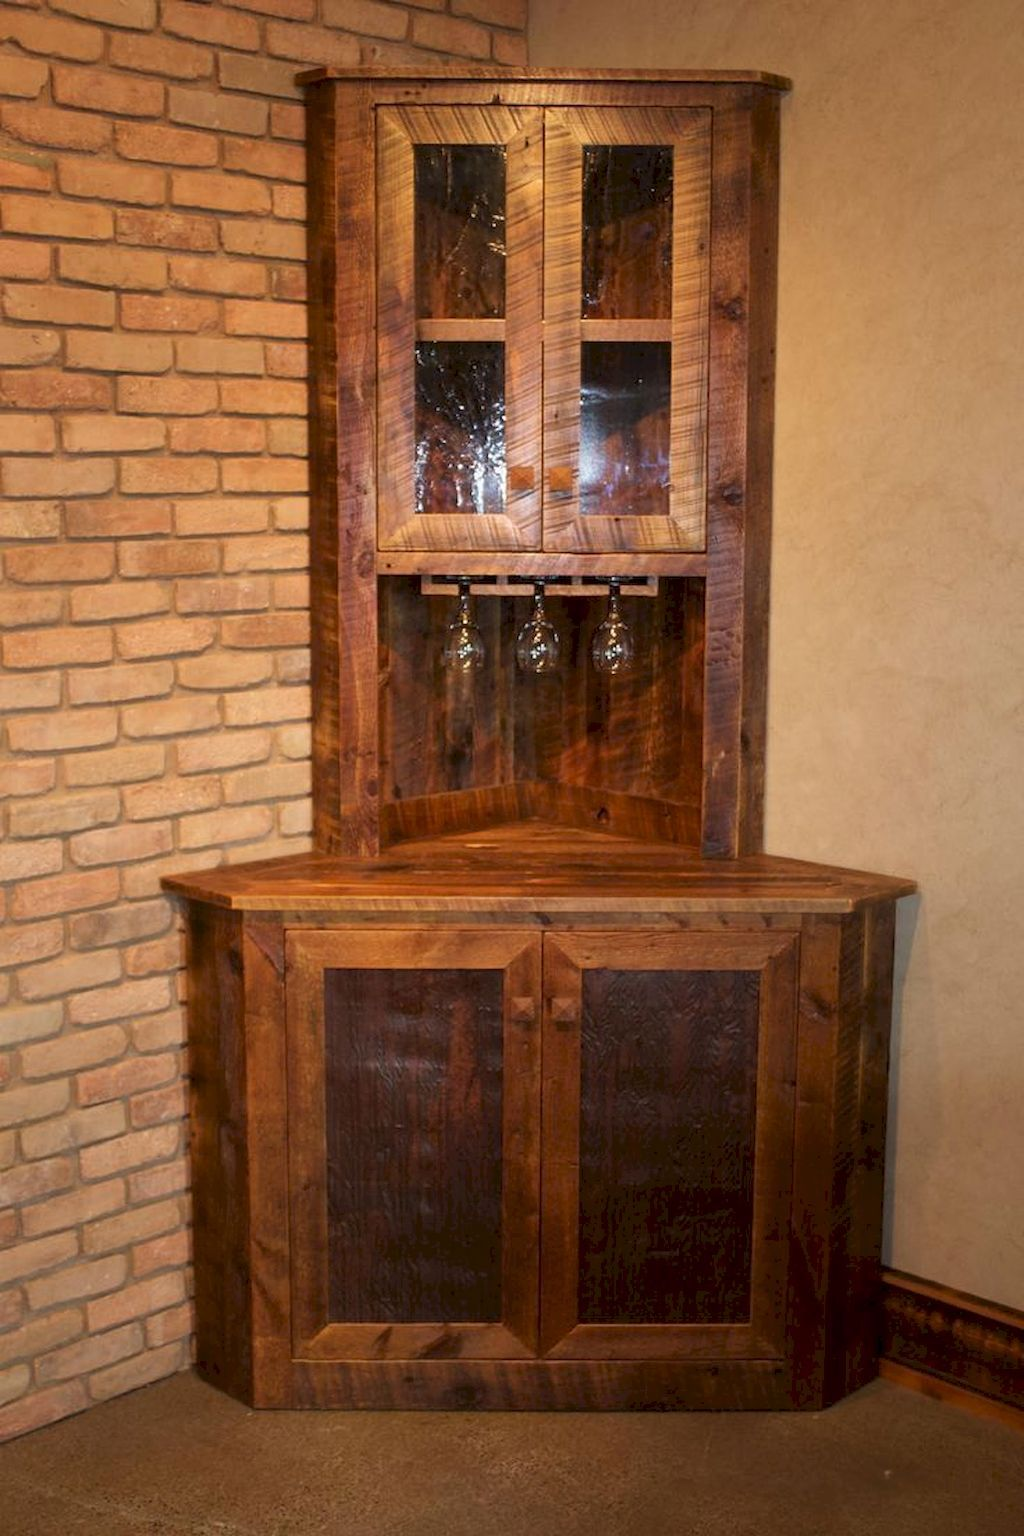 Pin By Debbie Custer On I Can Build It In 2020 Diy Home Bar Home Bar Cabinet Bars For Home